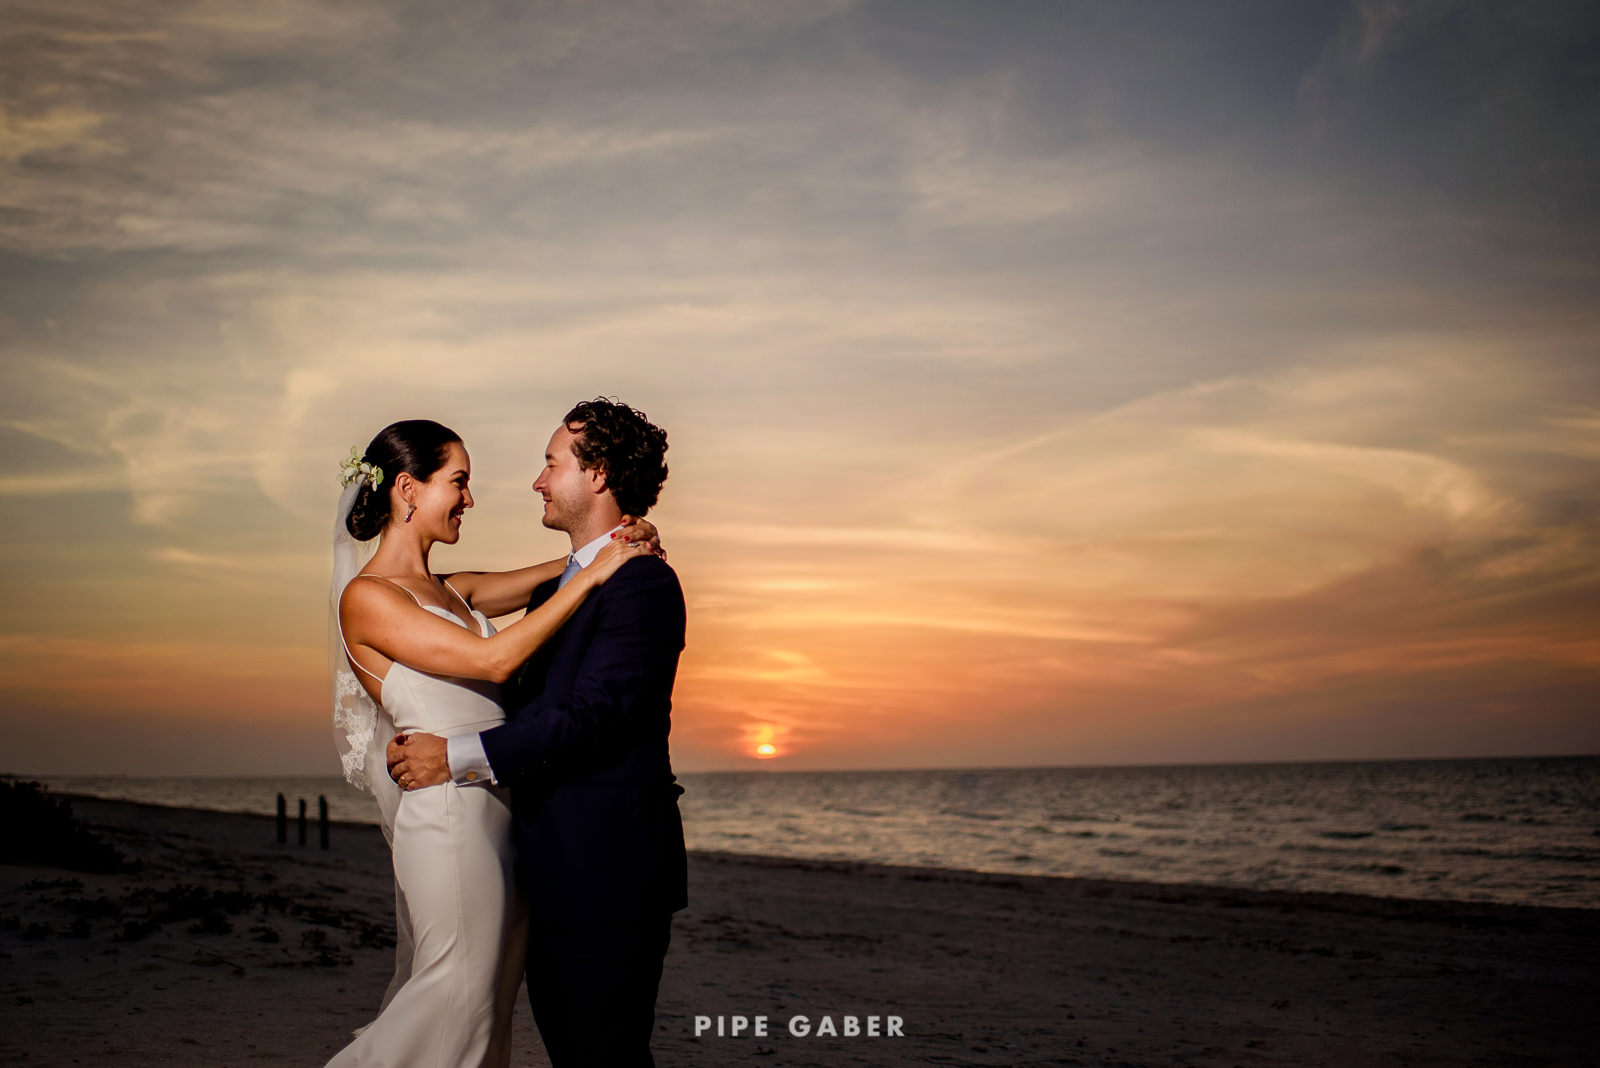 Wedding_phographer_Yucatan_beach_26.JPG